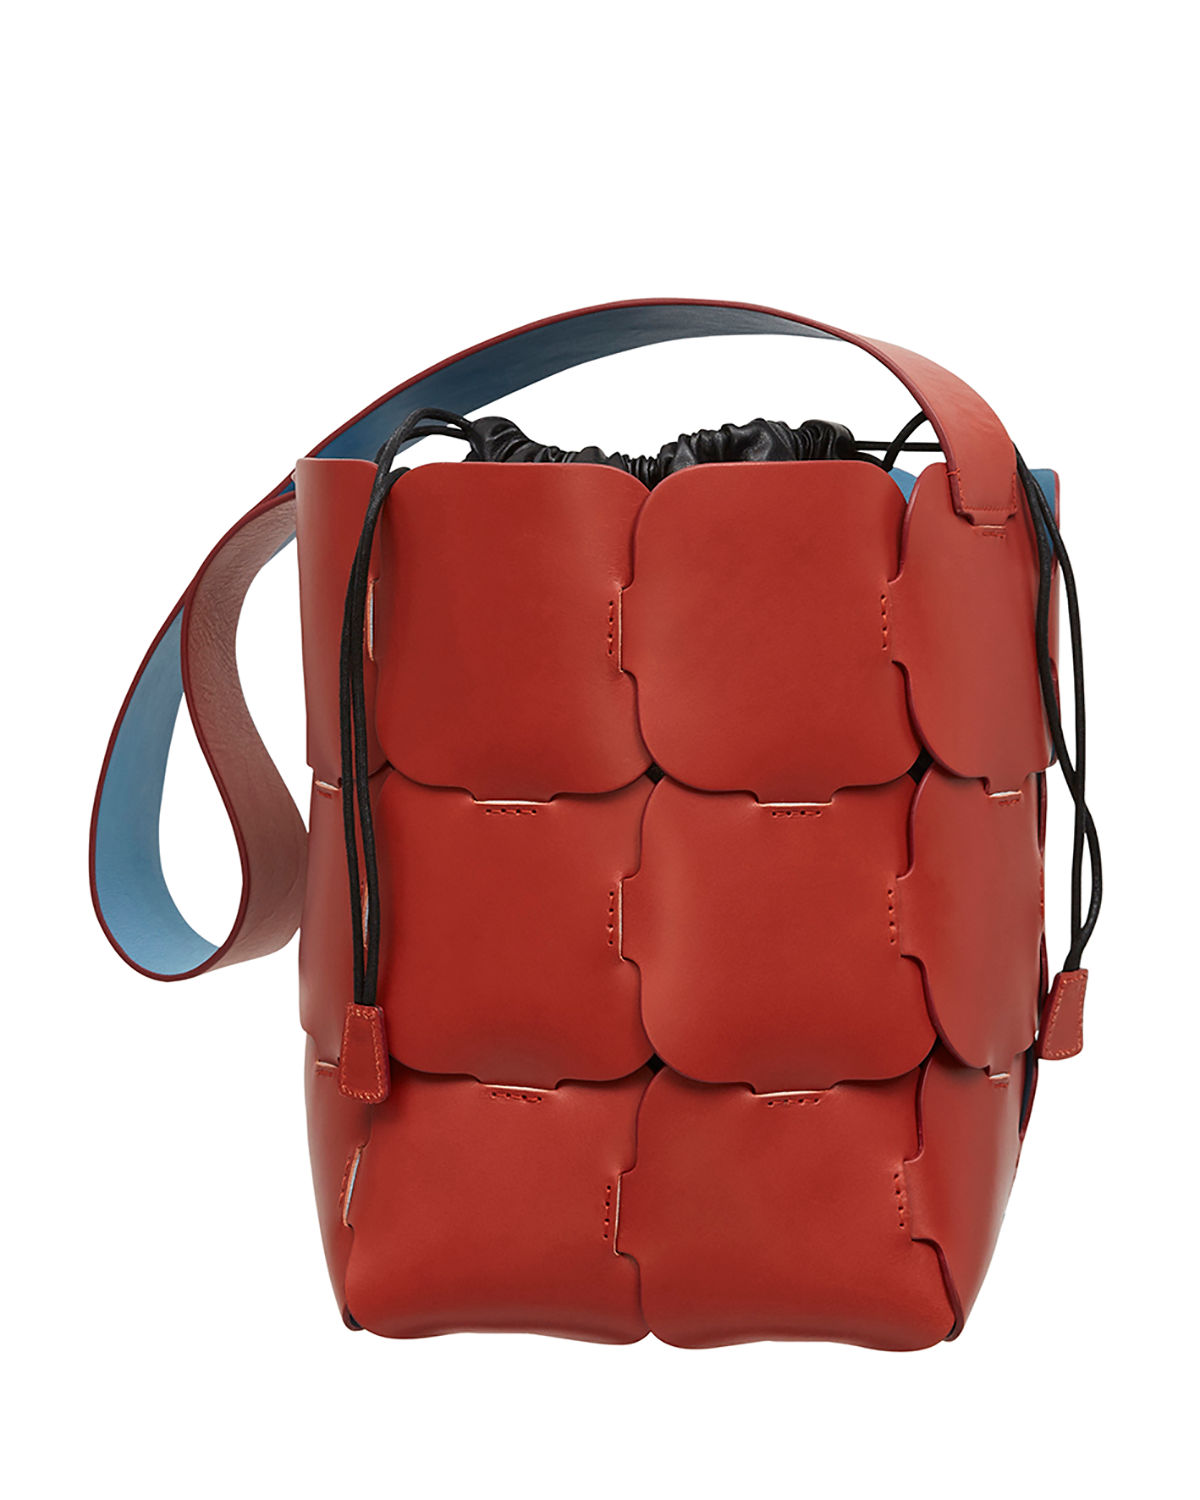 Brick-Pattern Leather Bucket Bag